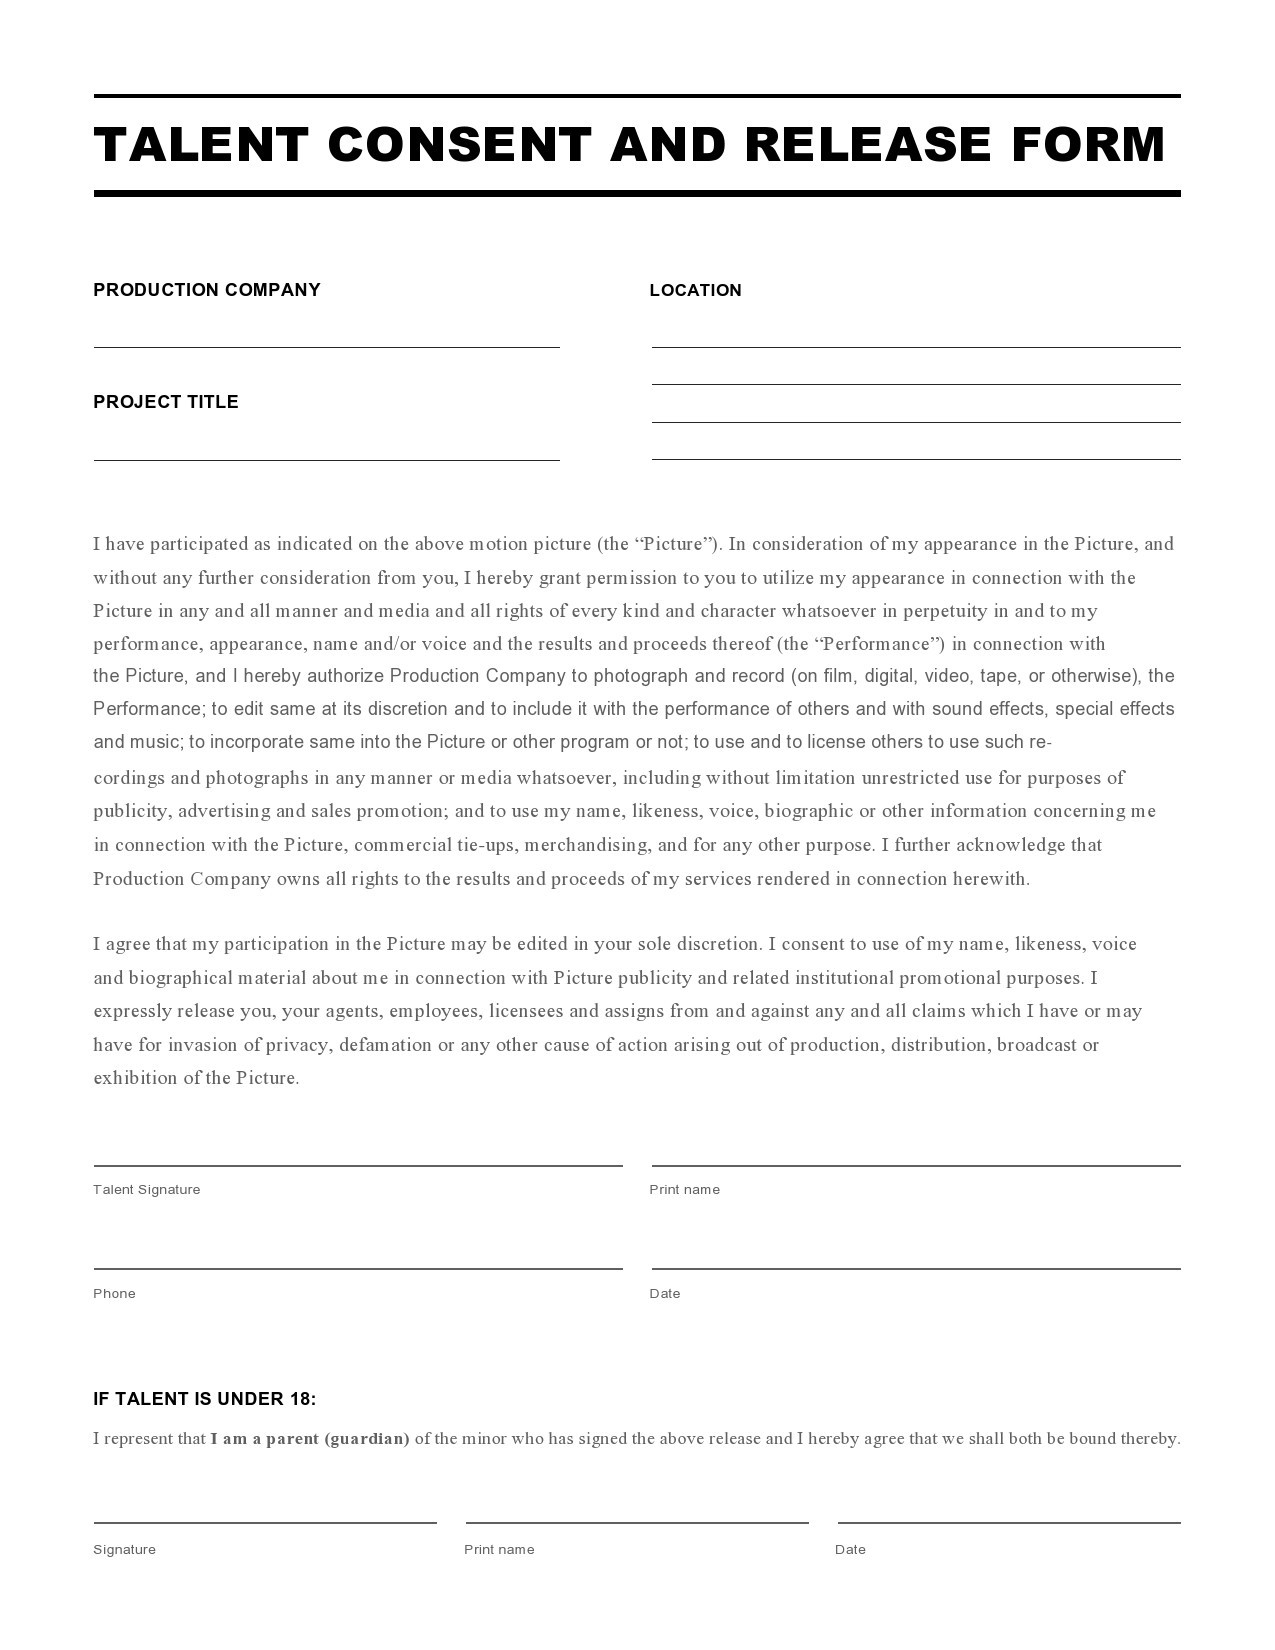 Free talent release form 18